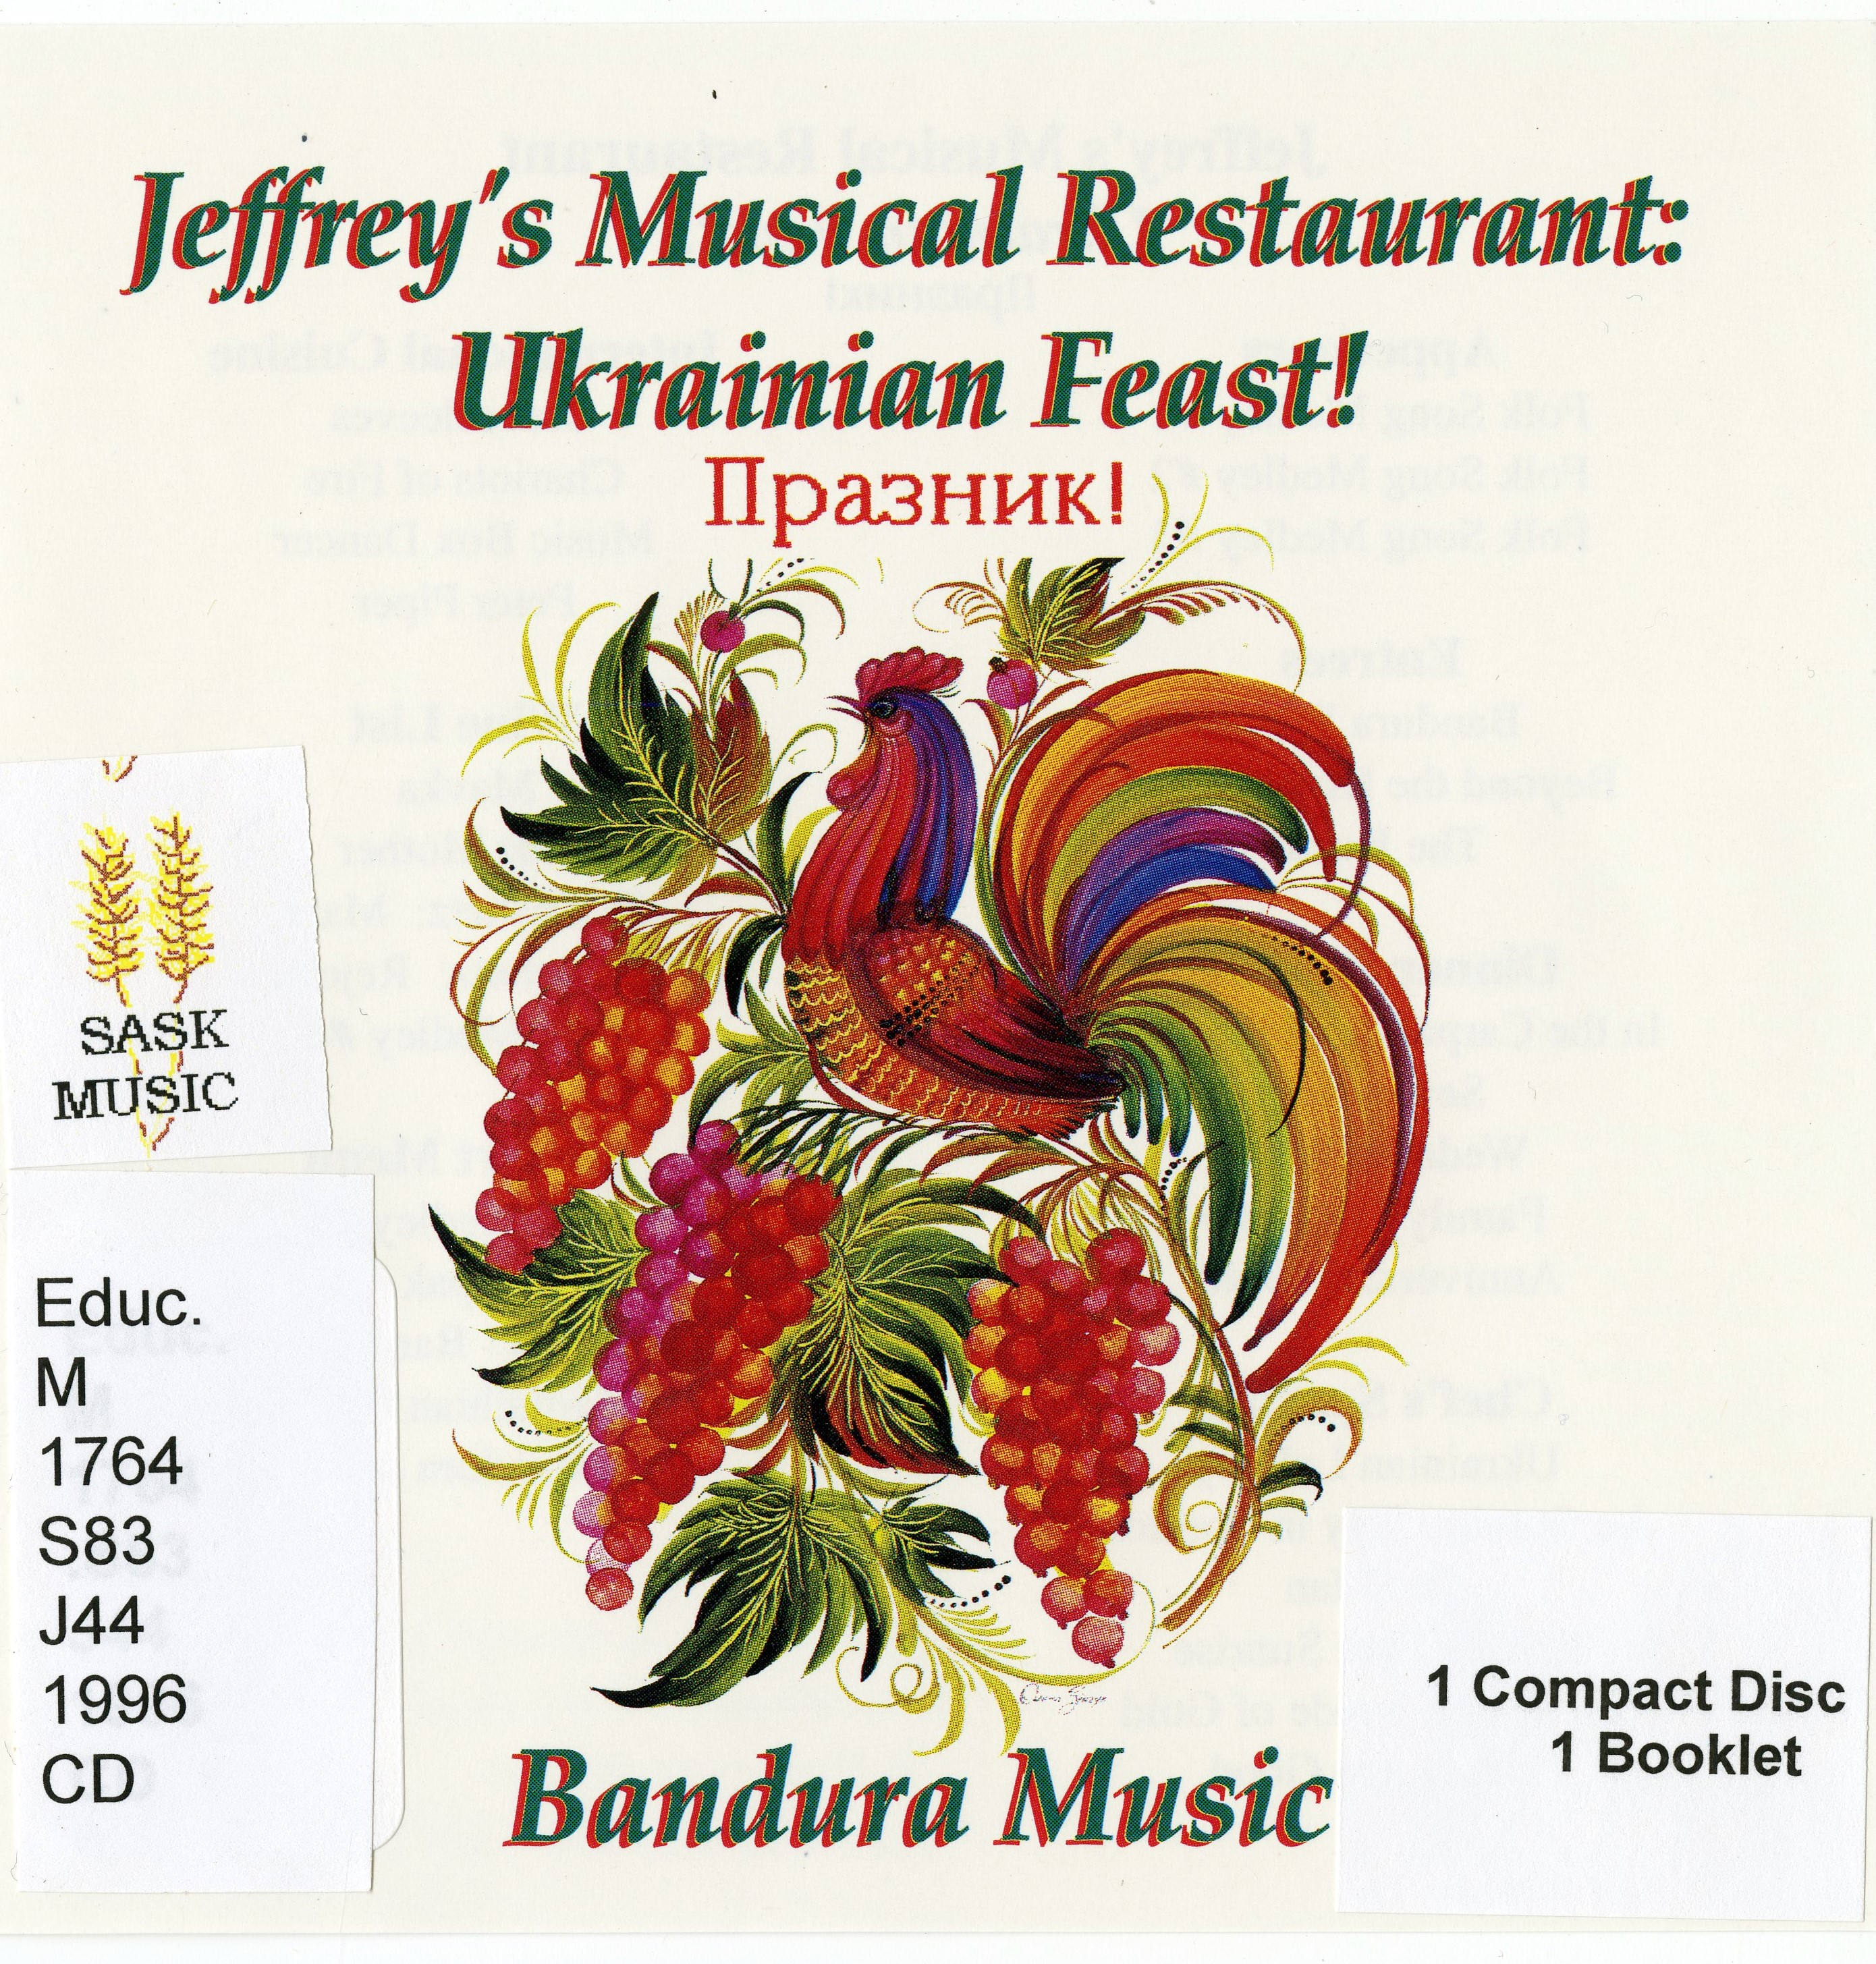 Jeffrey's musical restaurant